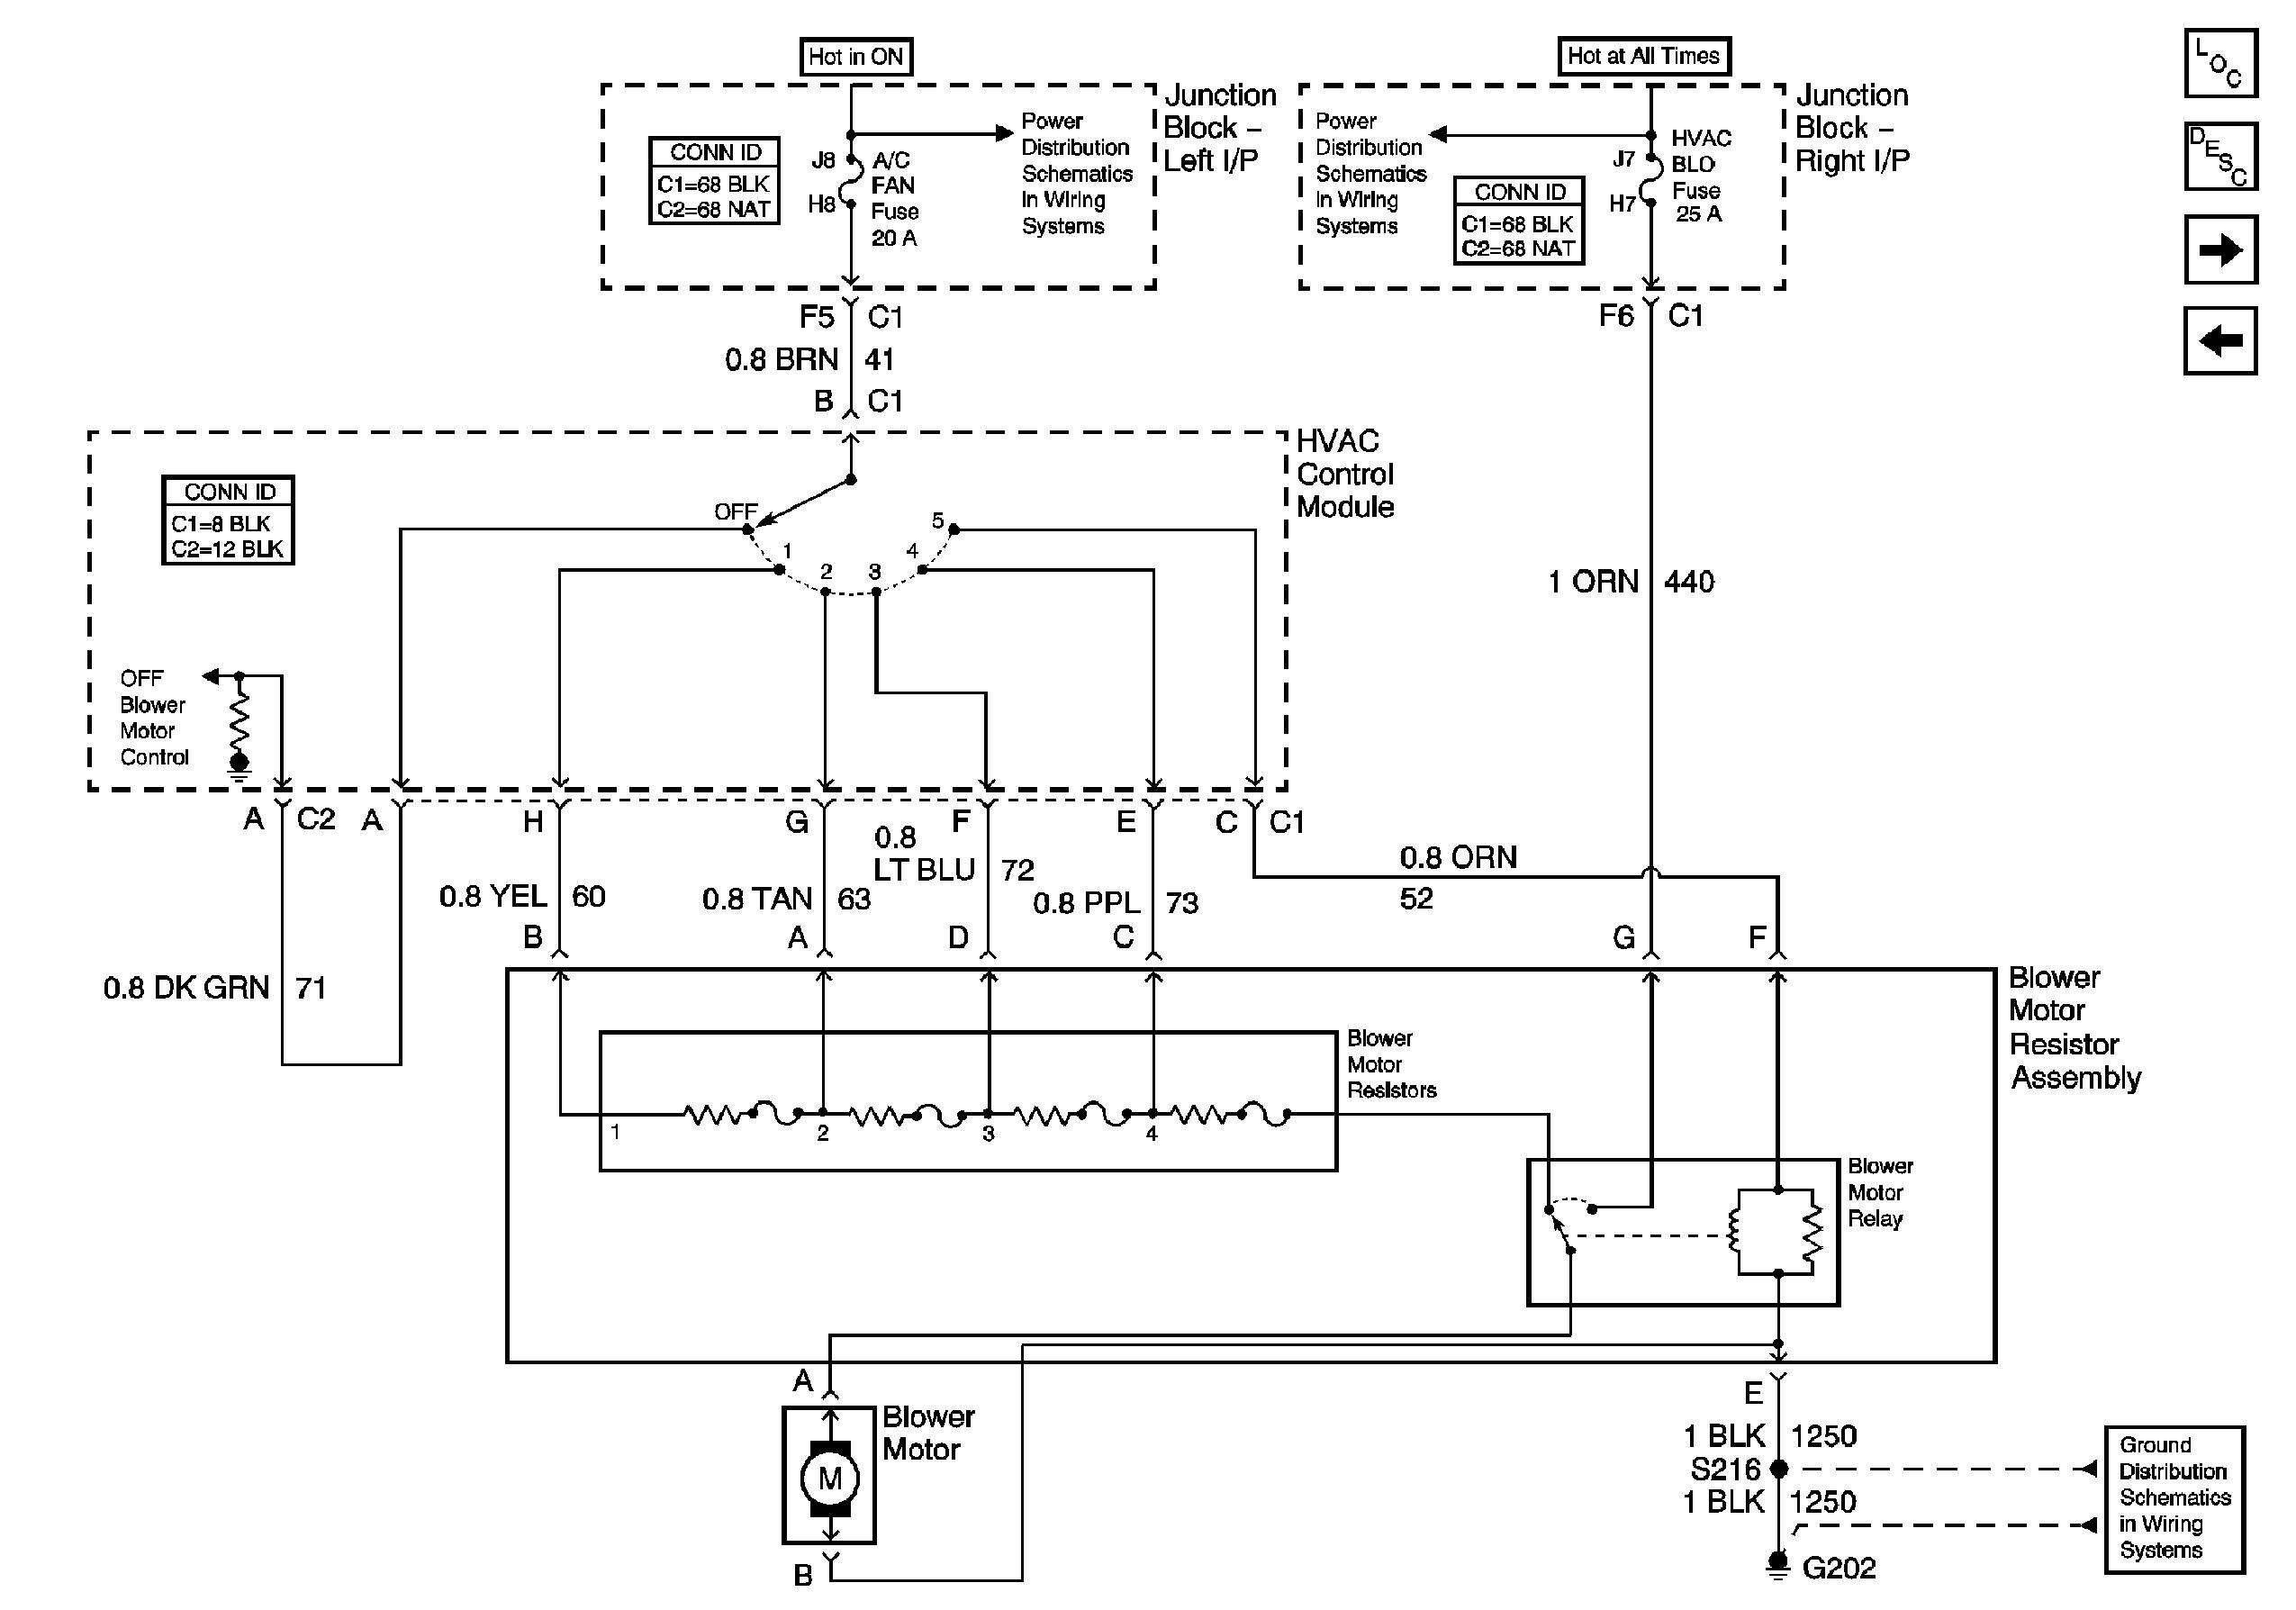 Wiring Diagram for Power Mirrors On Dodge 2004 2500 New 2004 Dodge Ram 1500 Ignition Wiring Diagram Diagram Of Wiring Diagram for Power Mirrors On Dodge 2004 2500